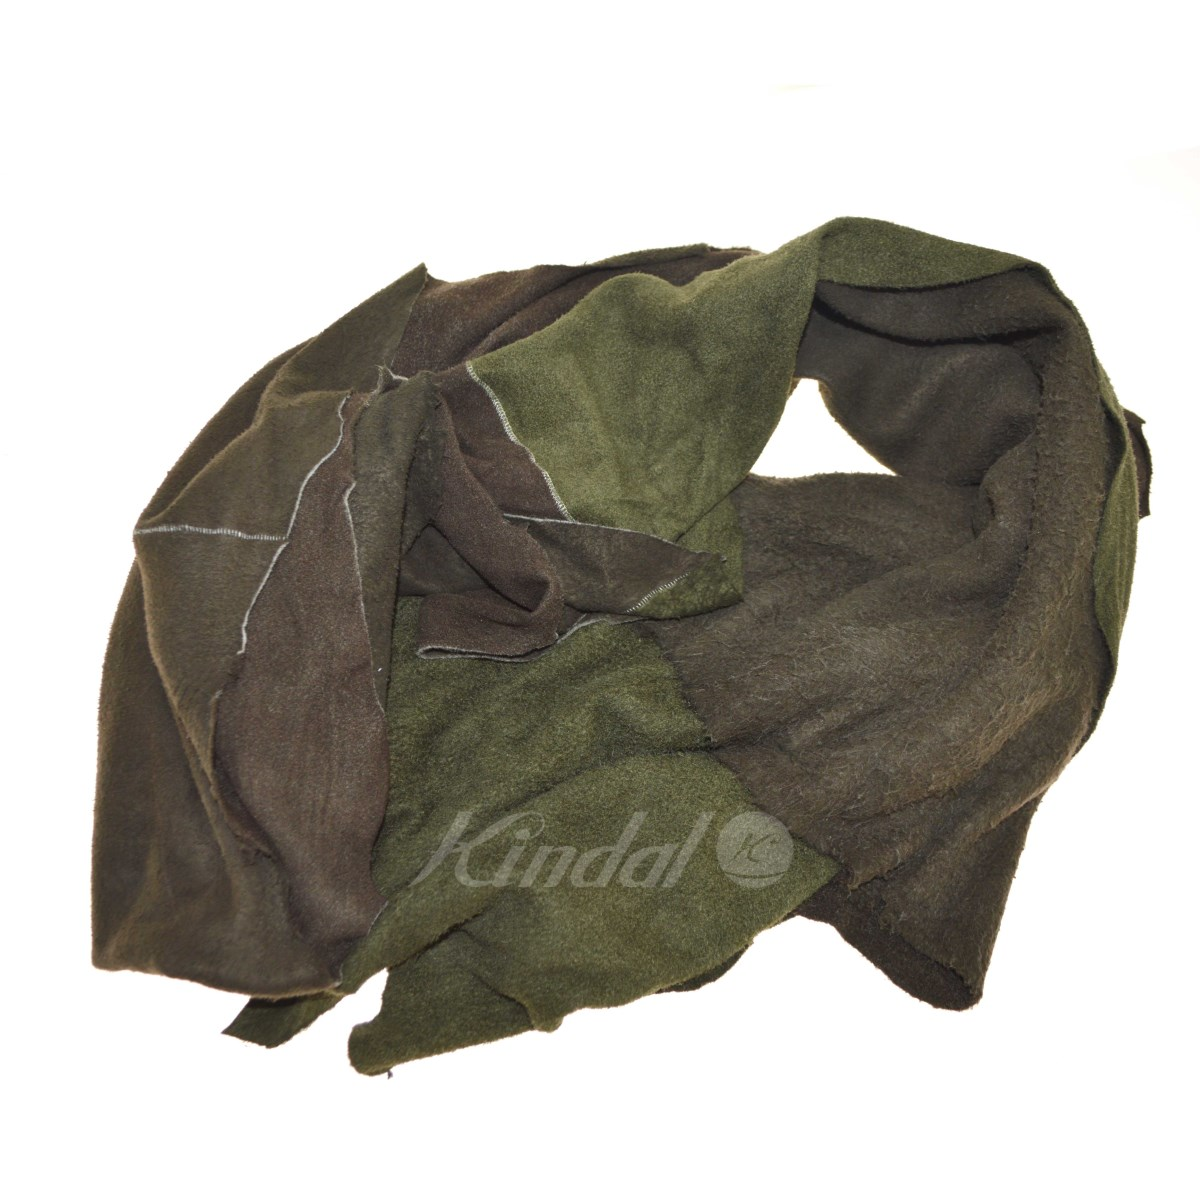 【中古】TAKAHIROMIYASHITA TheSoloIst. new rough out scarf スカーフ 【送料無料】 【092548】 【KIND1490】